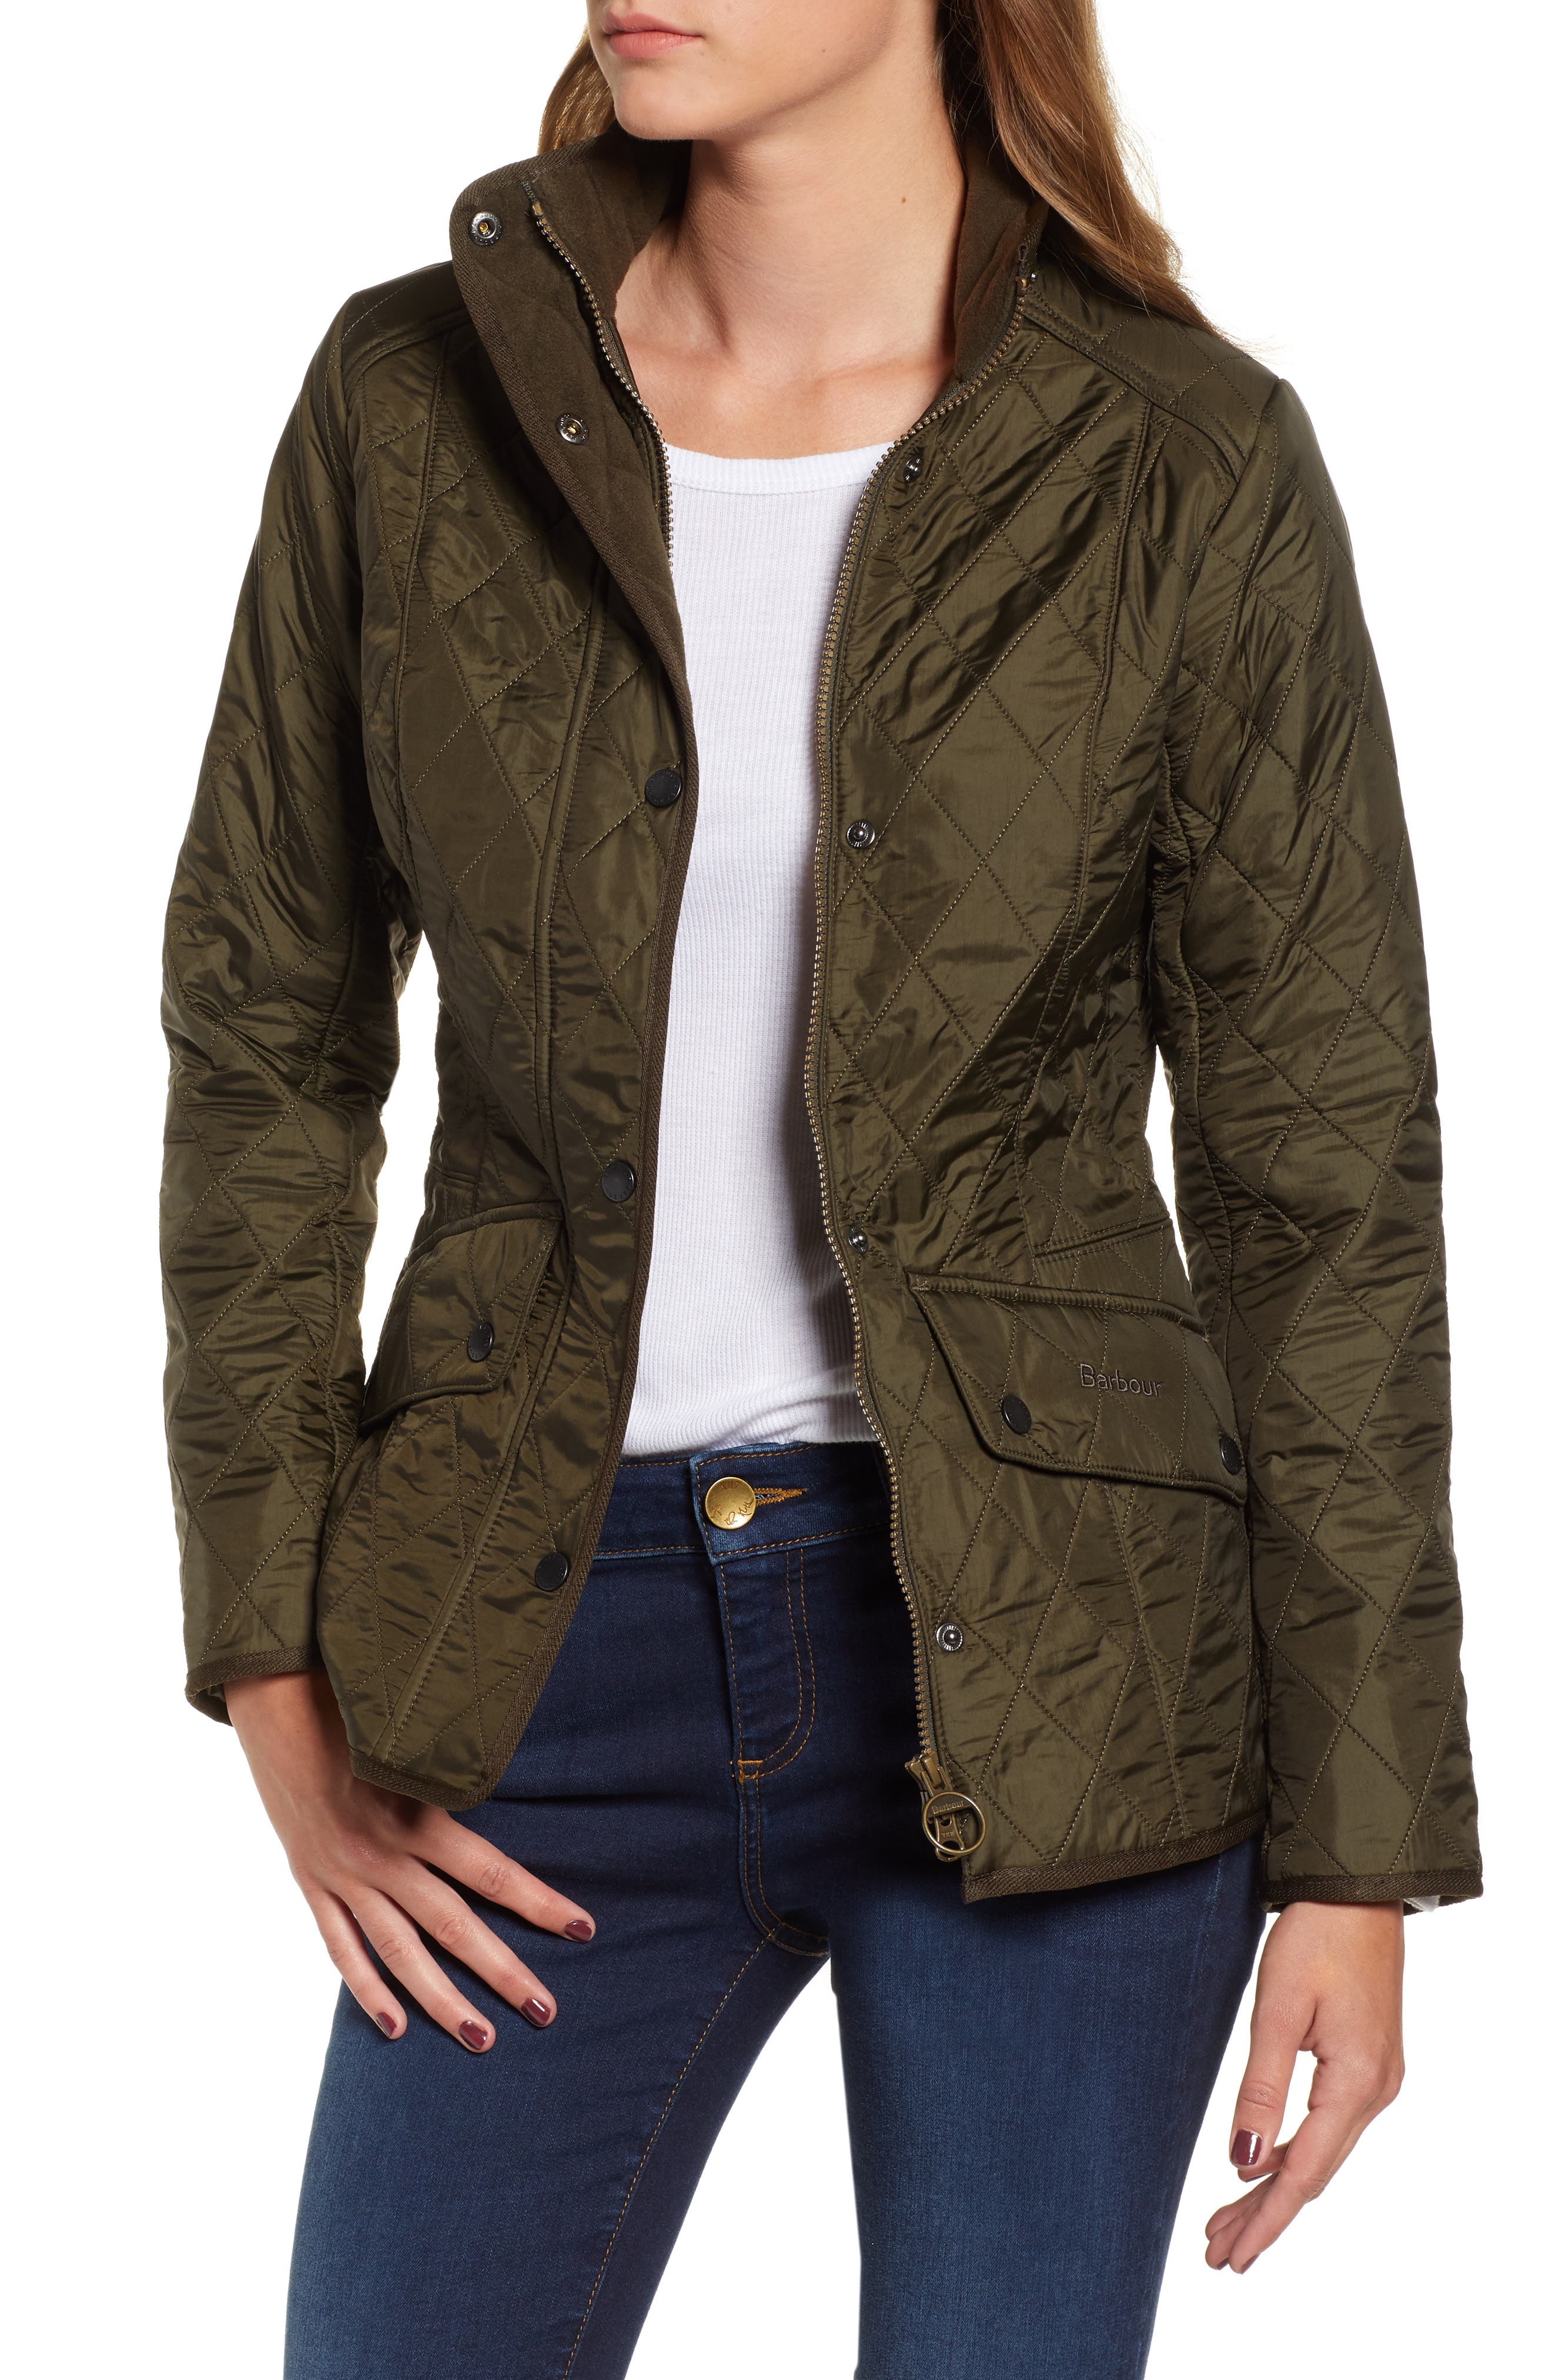 BARBOUR, 'Cavalry' Quilted Jacket, Main thumbnail 1, color, DARK OLIVE/ OLIVE